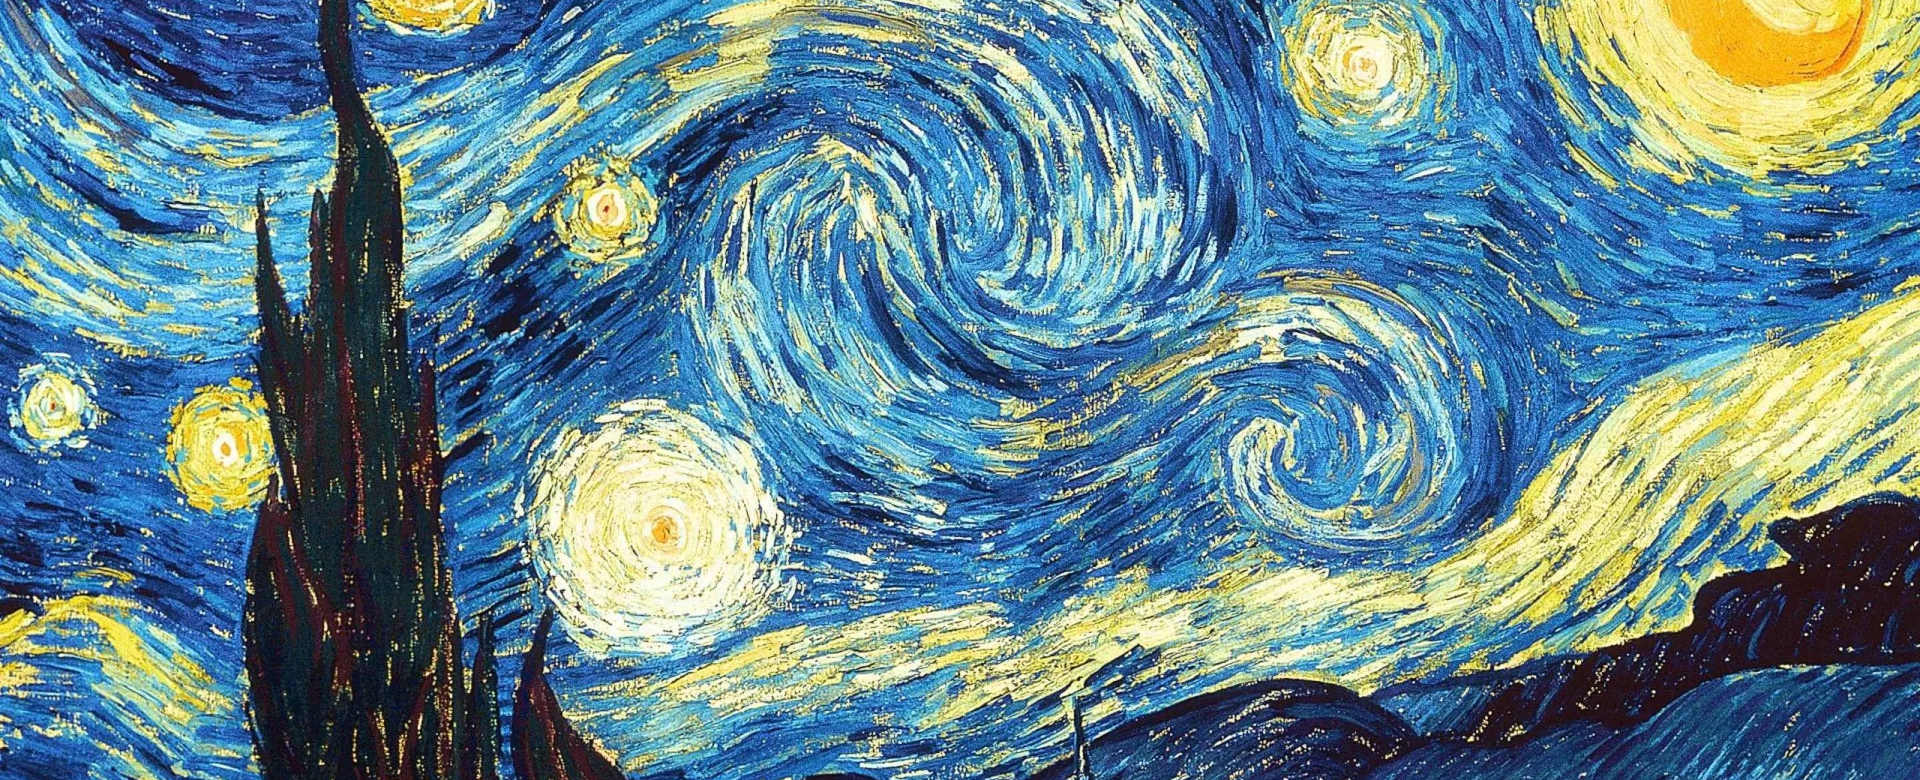 Van Gogh exhibition in Florence